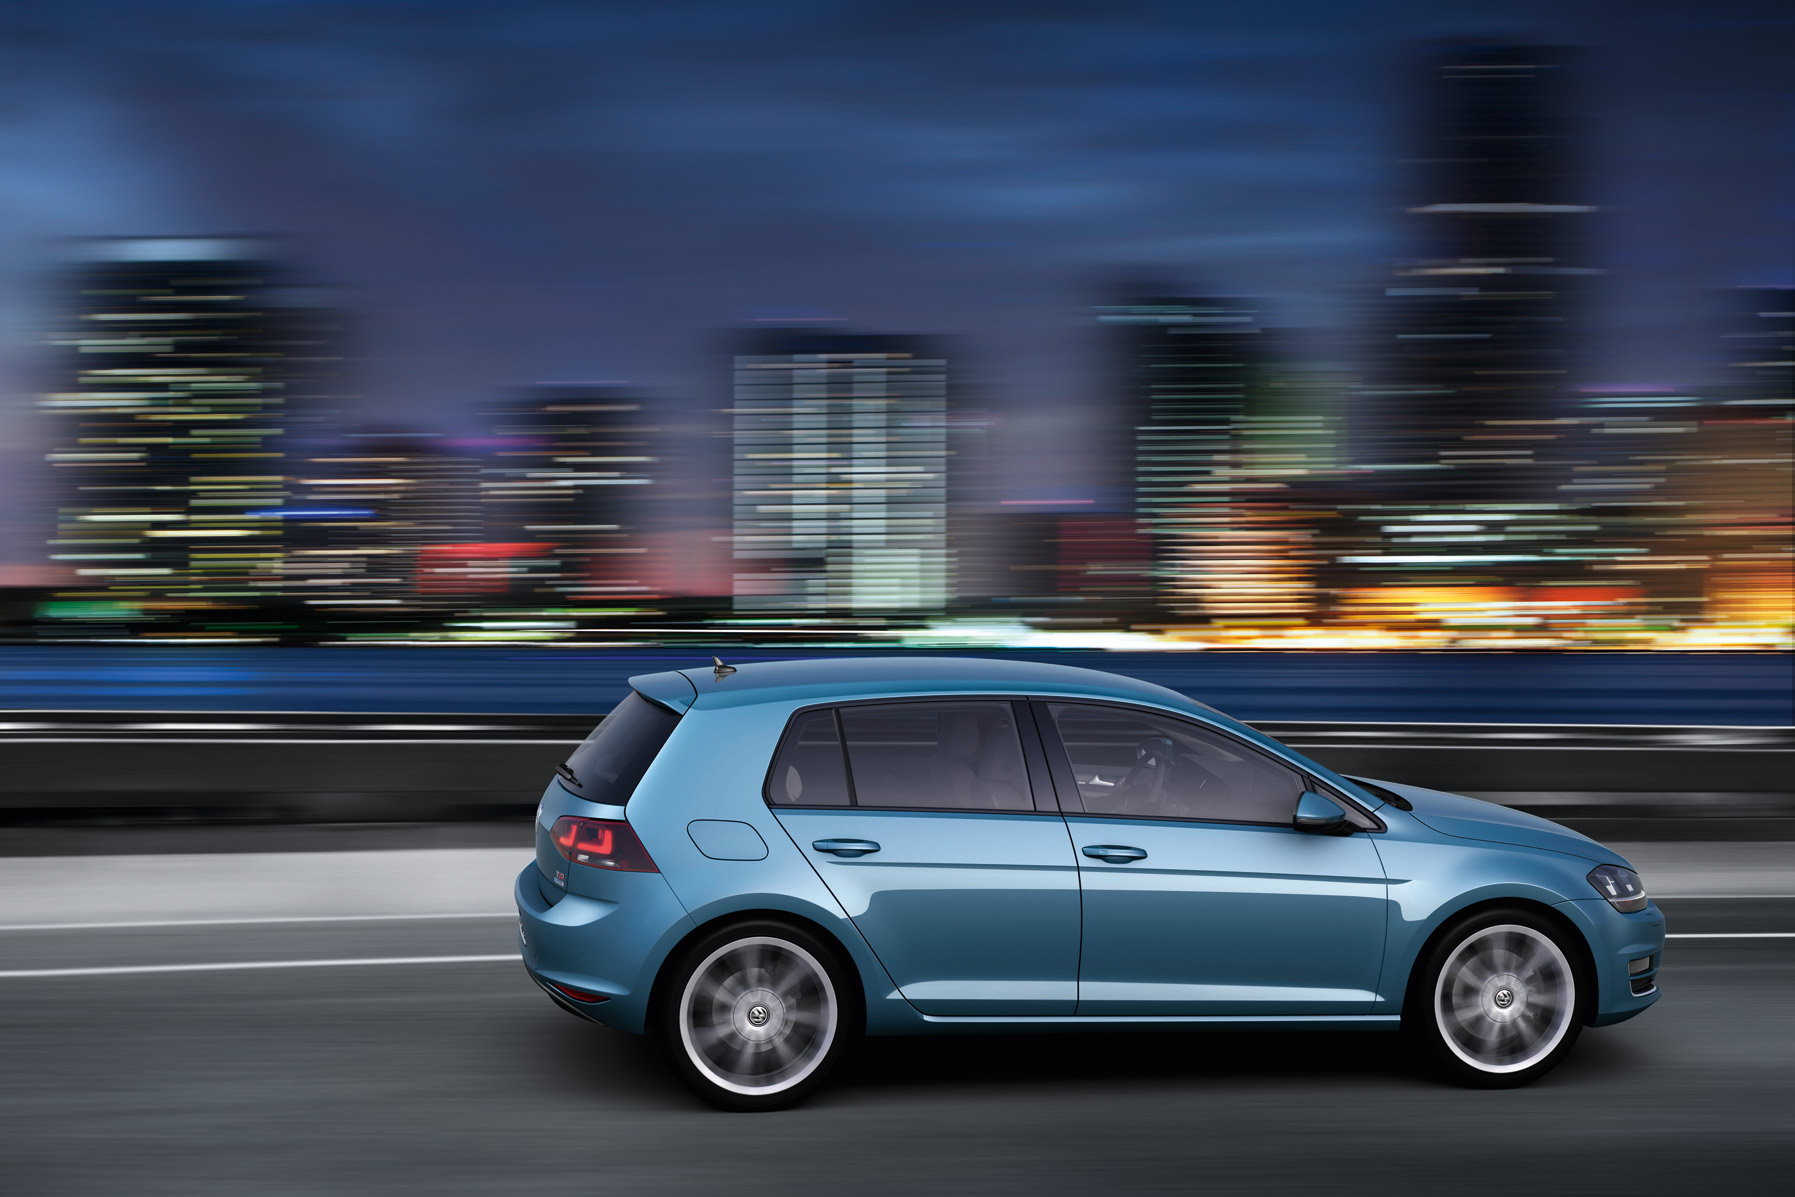 volkswagen-golf-7-motion1